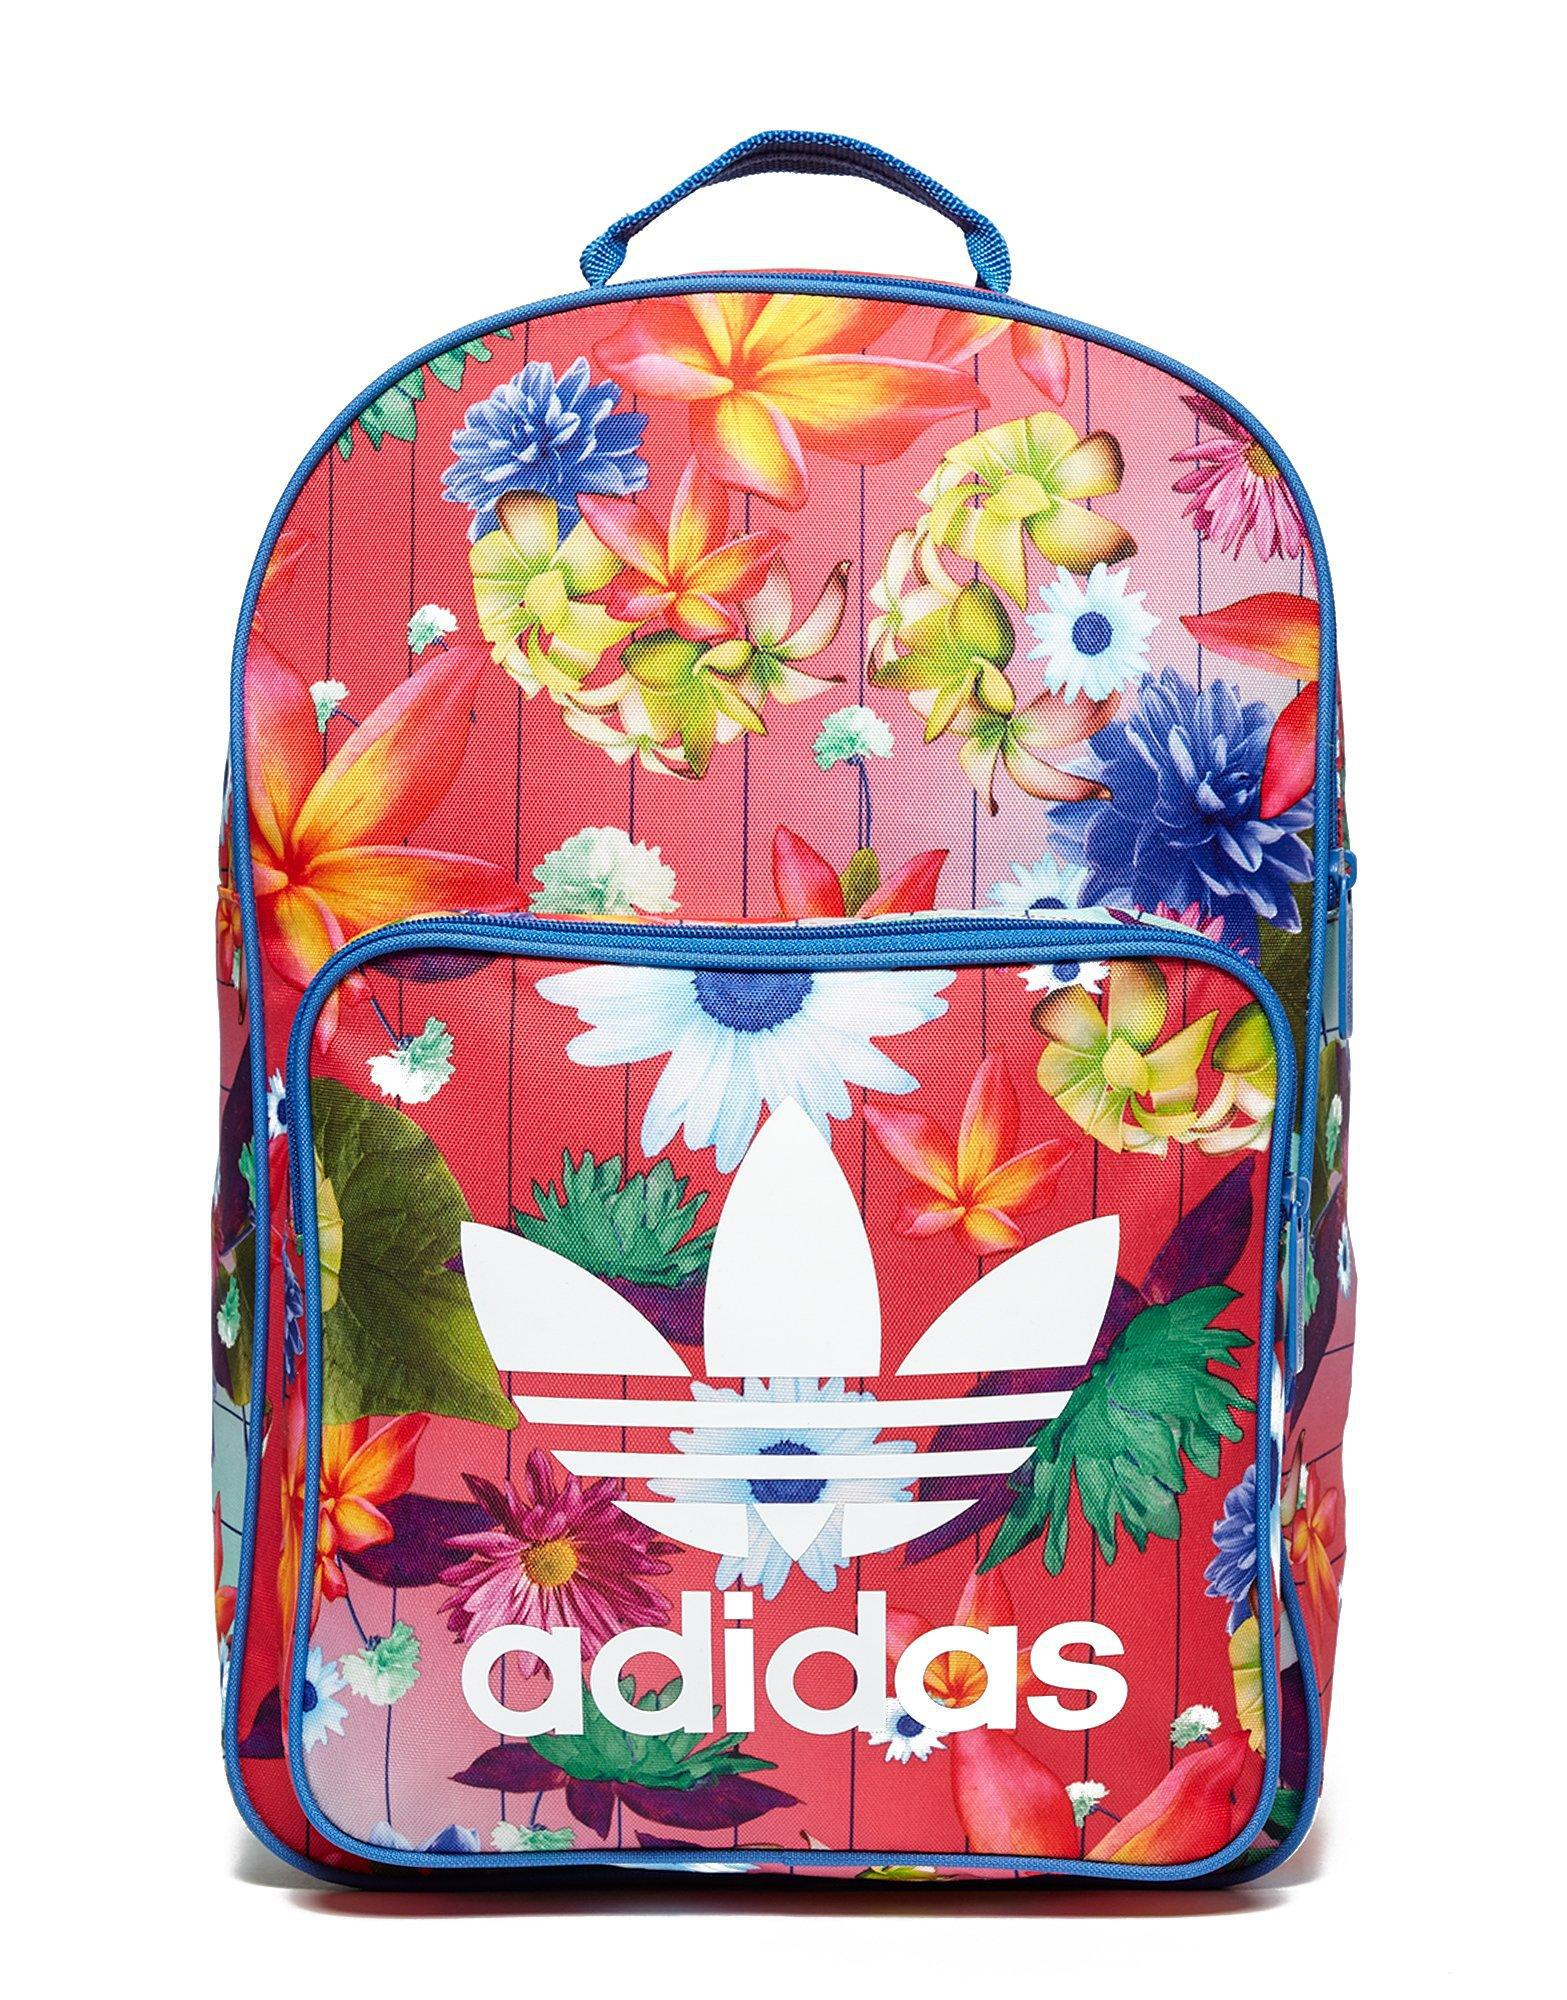 adidas Originals Classic Flower Backpack - Lyst 46a92d4291